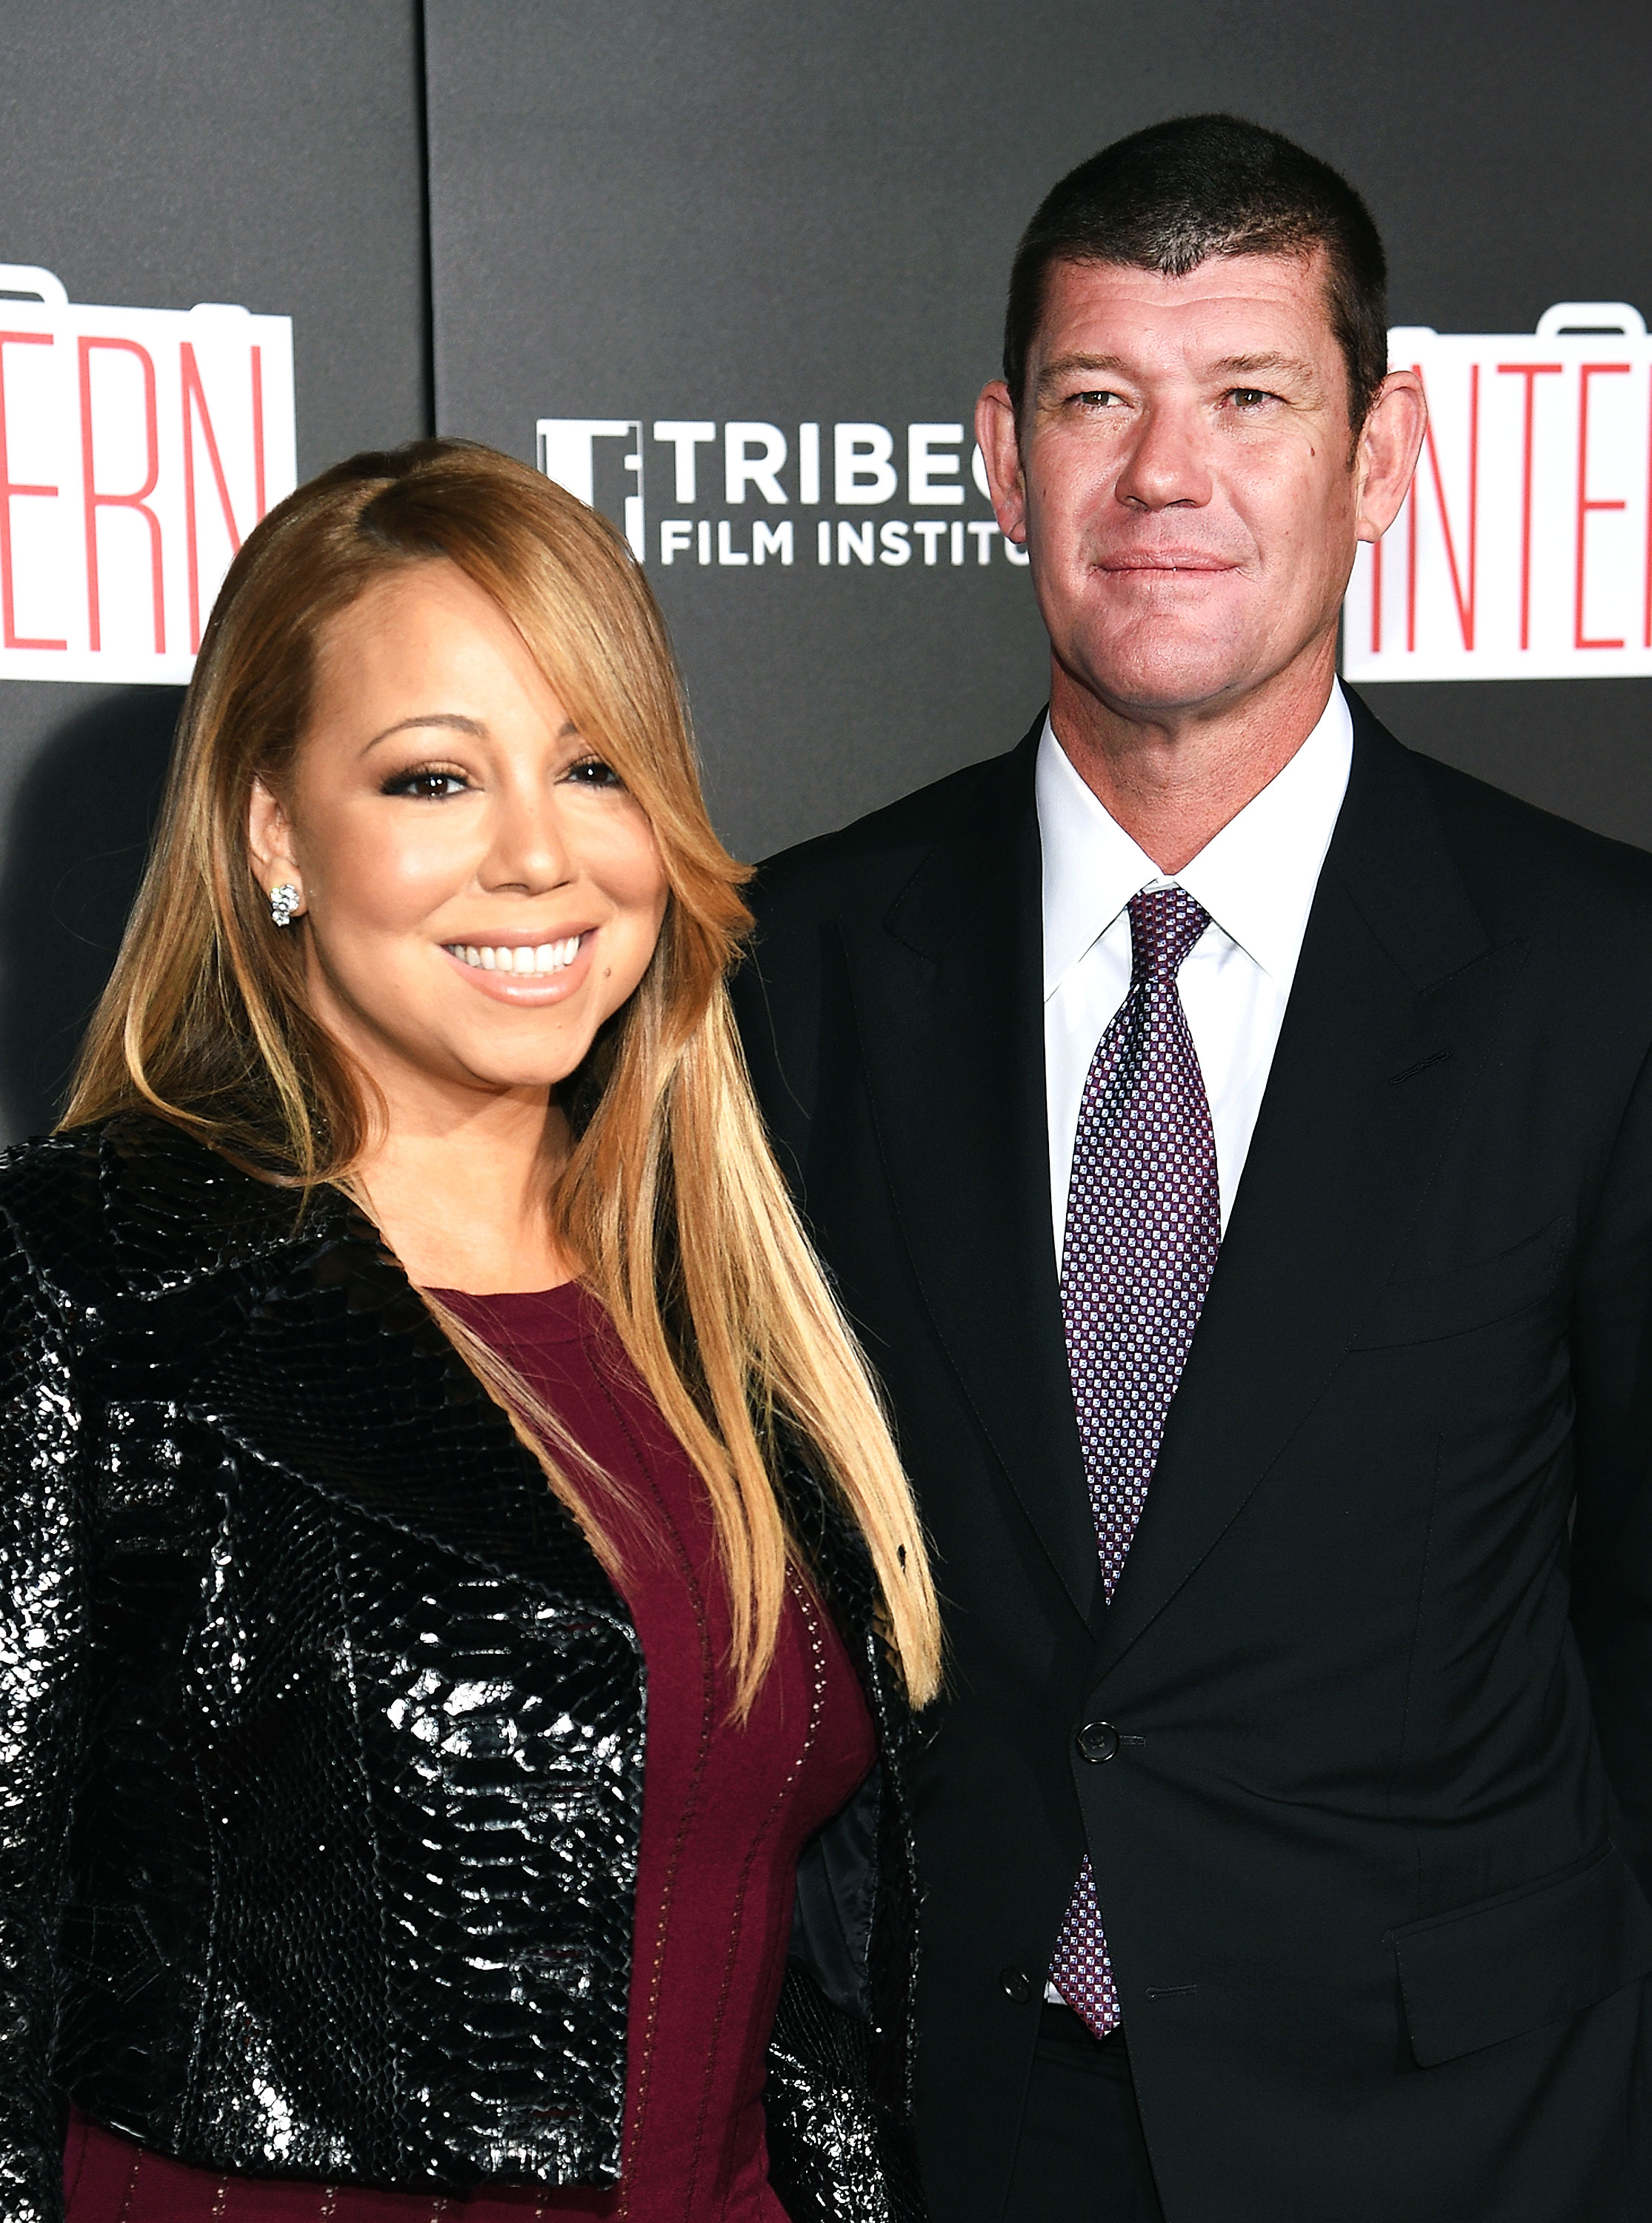 mariah carey still has her 35 carat diamond engagement ring from ex fiance james packer and it looks like shes going to be able to keep it according to - Mariah Carey Wedding Ring